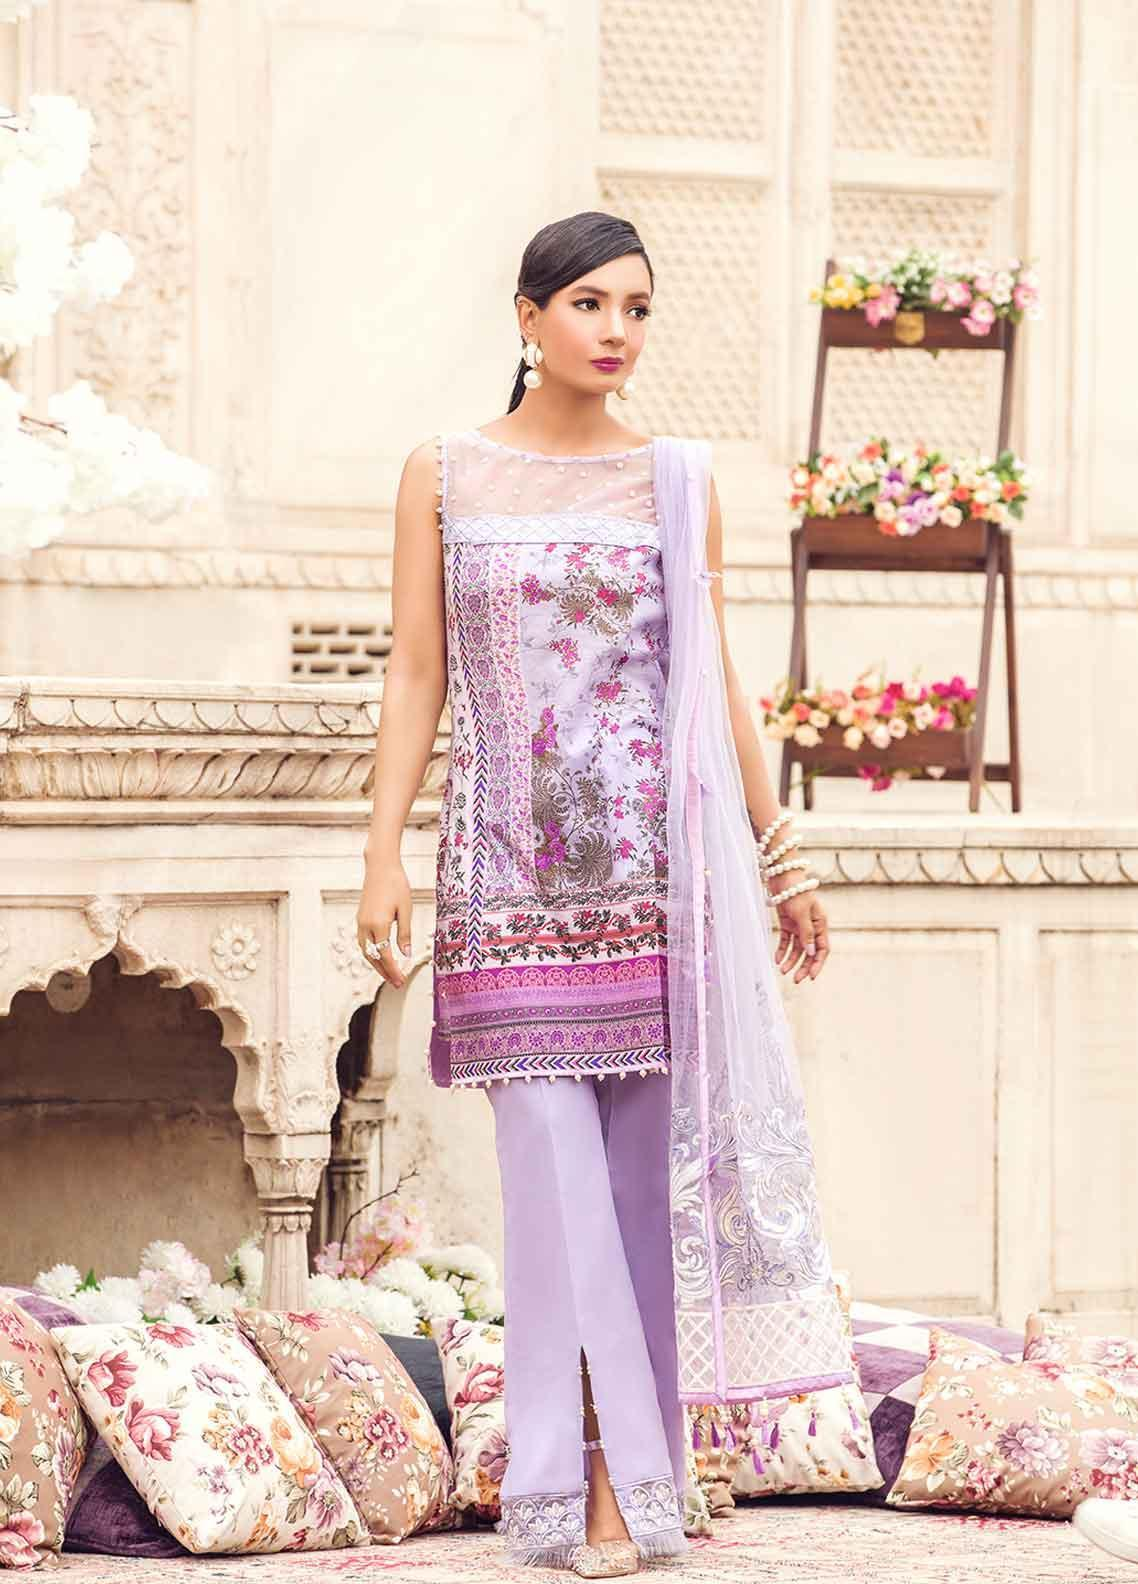 Gulaal Embroidered Lawn Unstitched 3 Piece Suit GL19-L2 03 PEARLESUQE - Mid Summer Collection